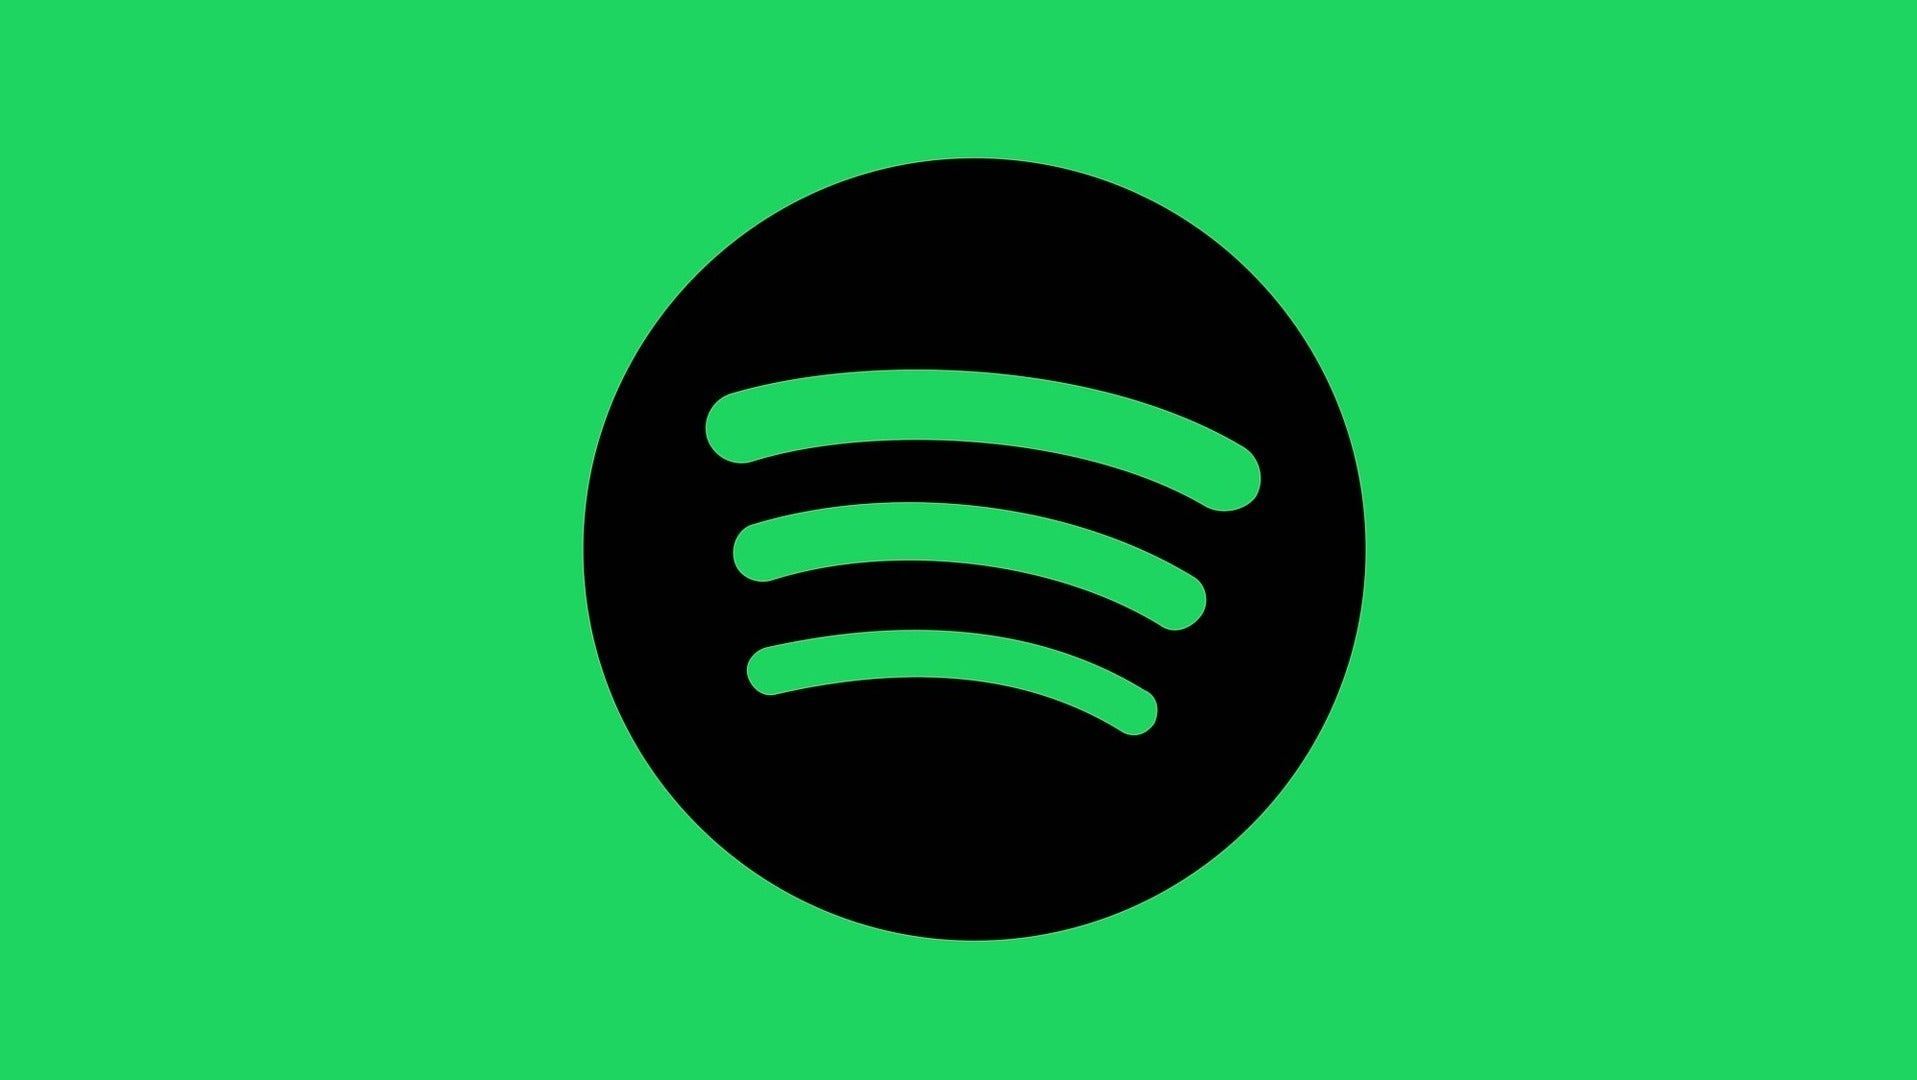 Everything You Need To Know About Spotify's Latest Changes